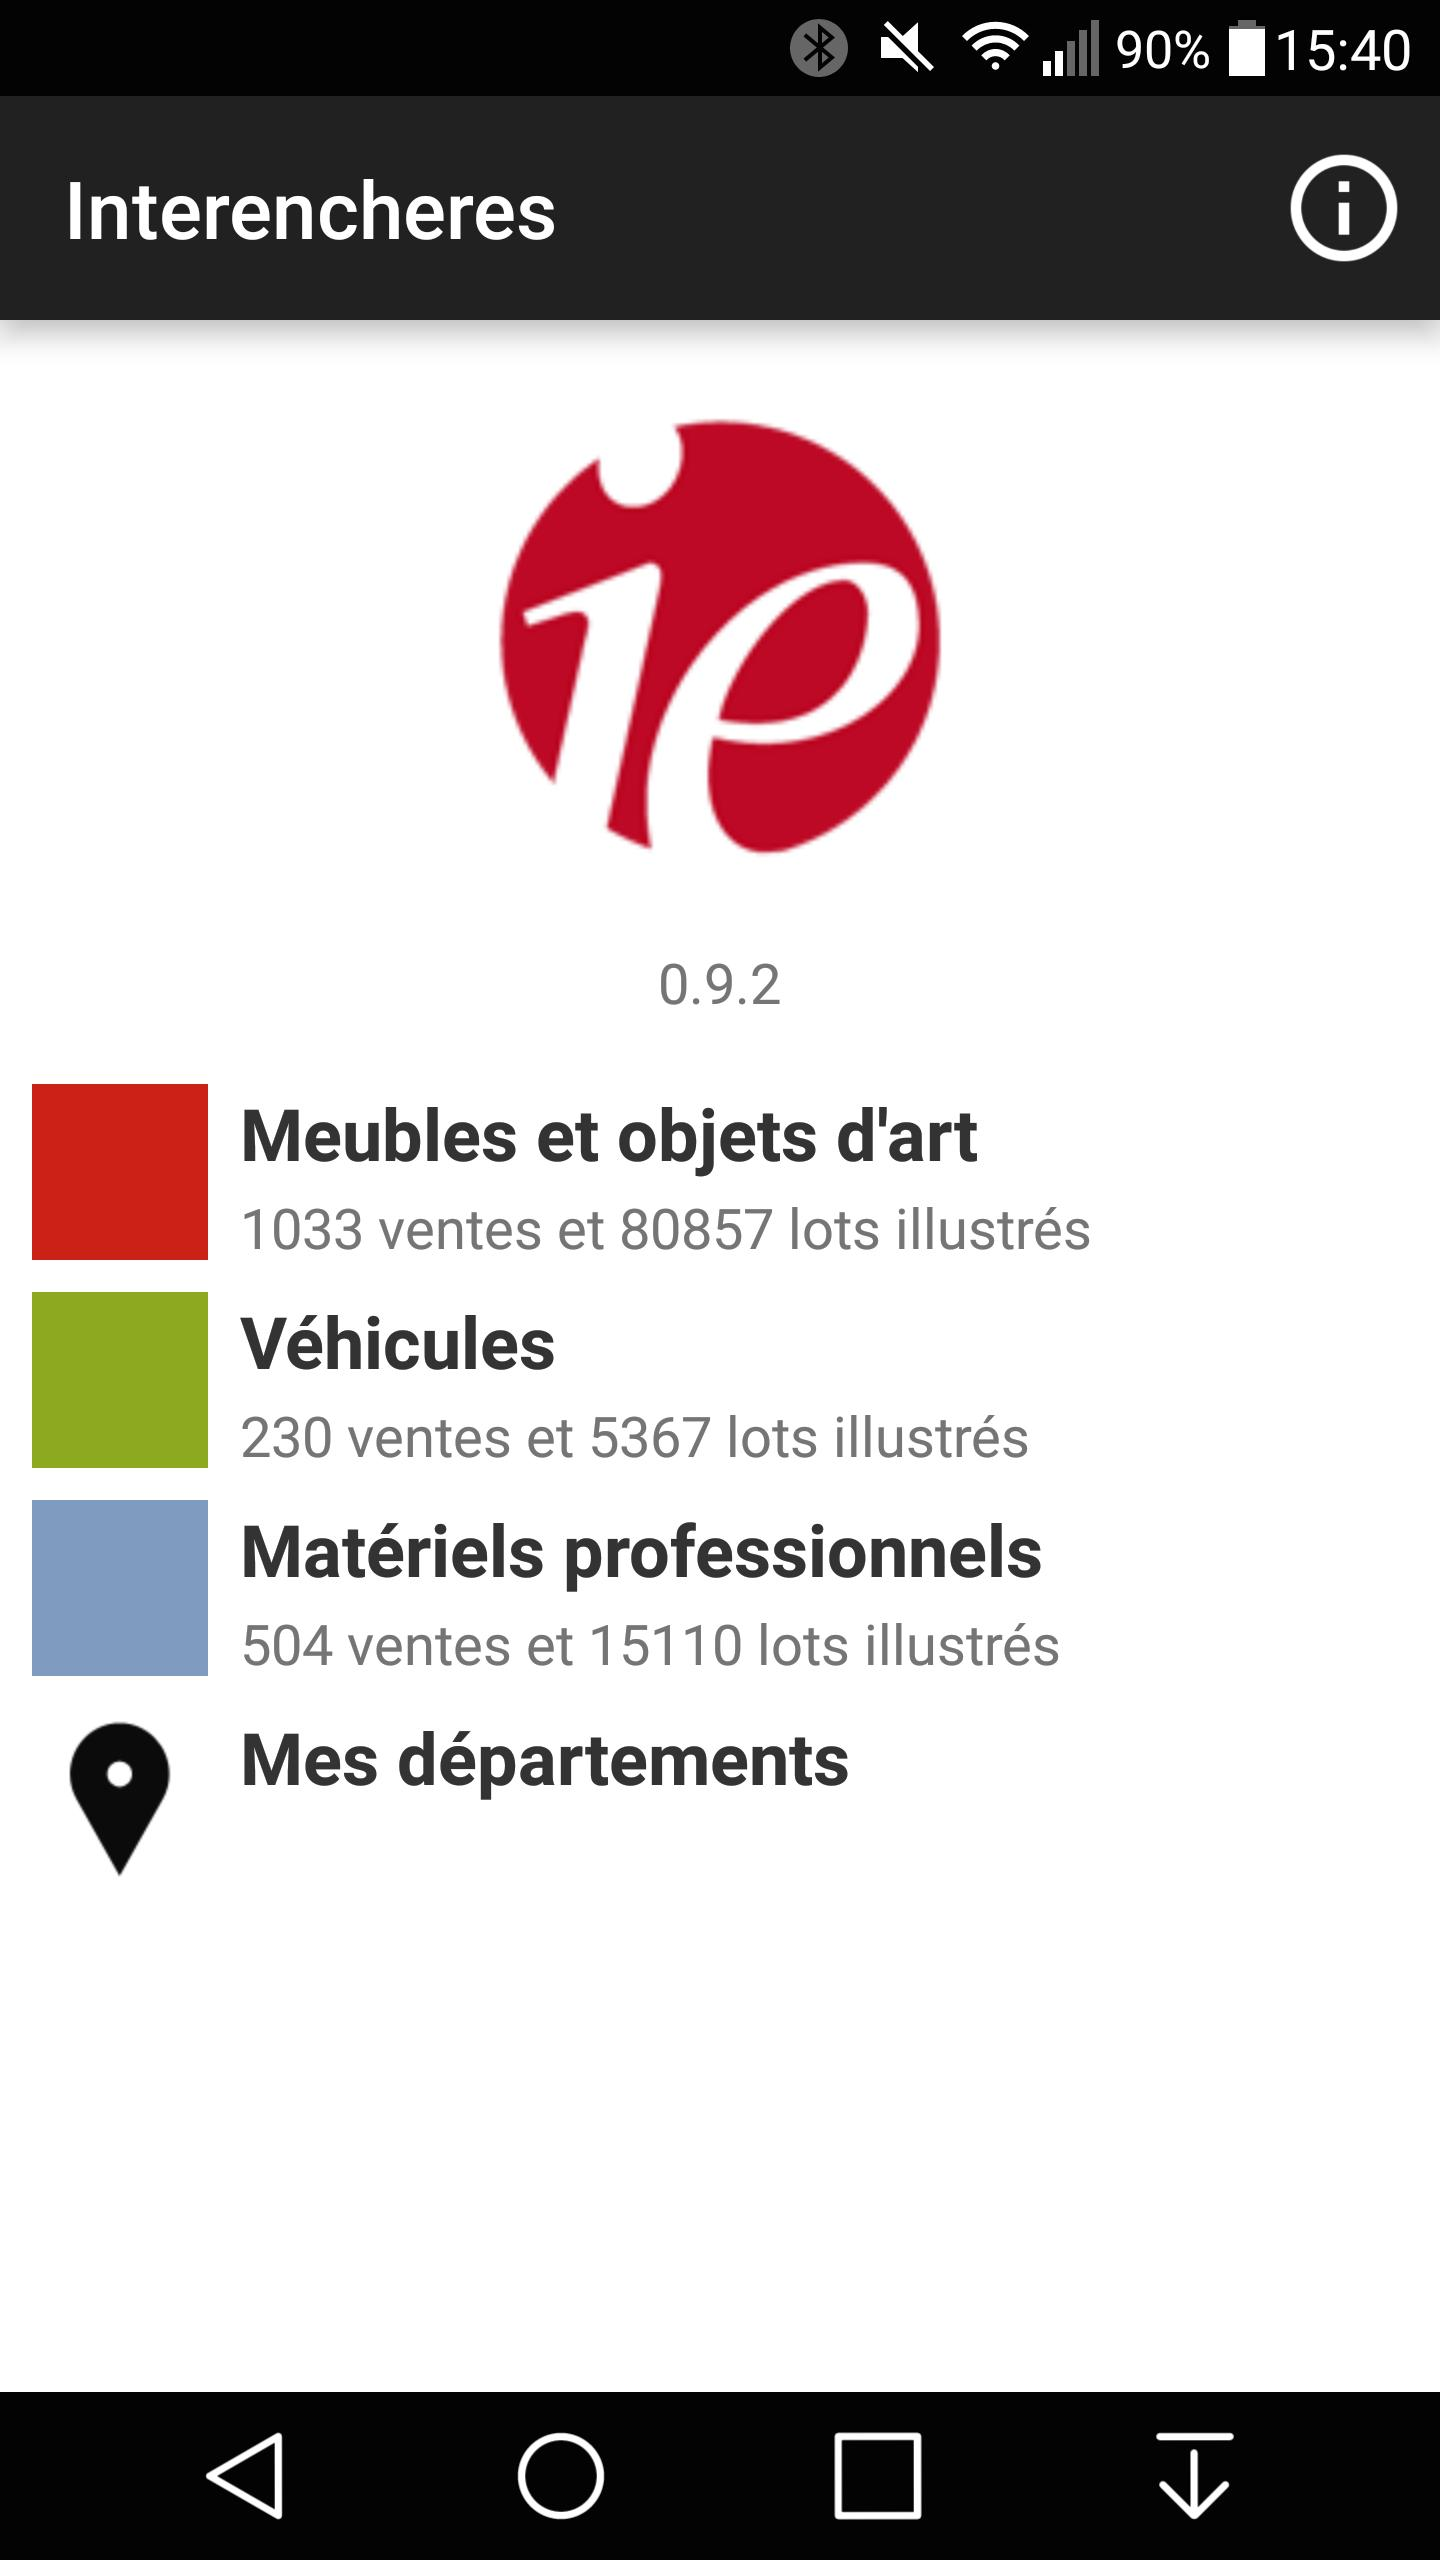 Calendrier Interencheres.Interencheres For Android Apk Download